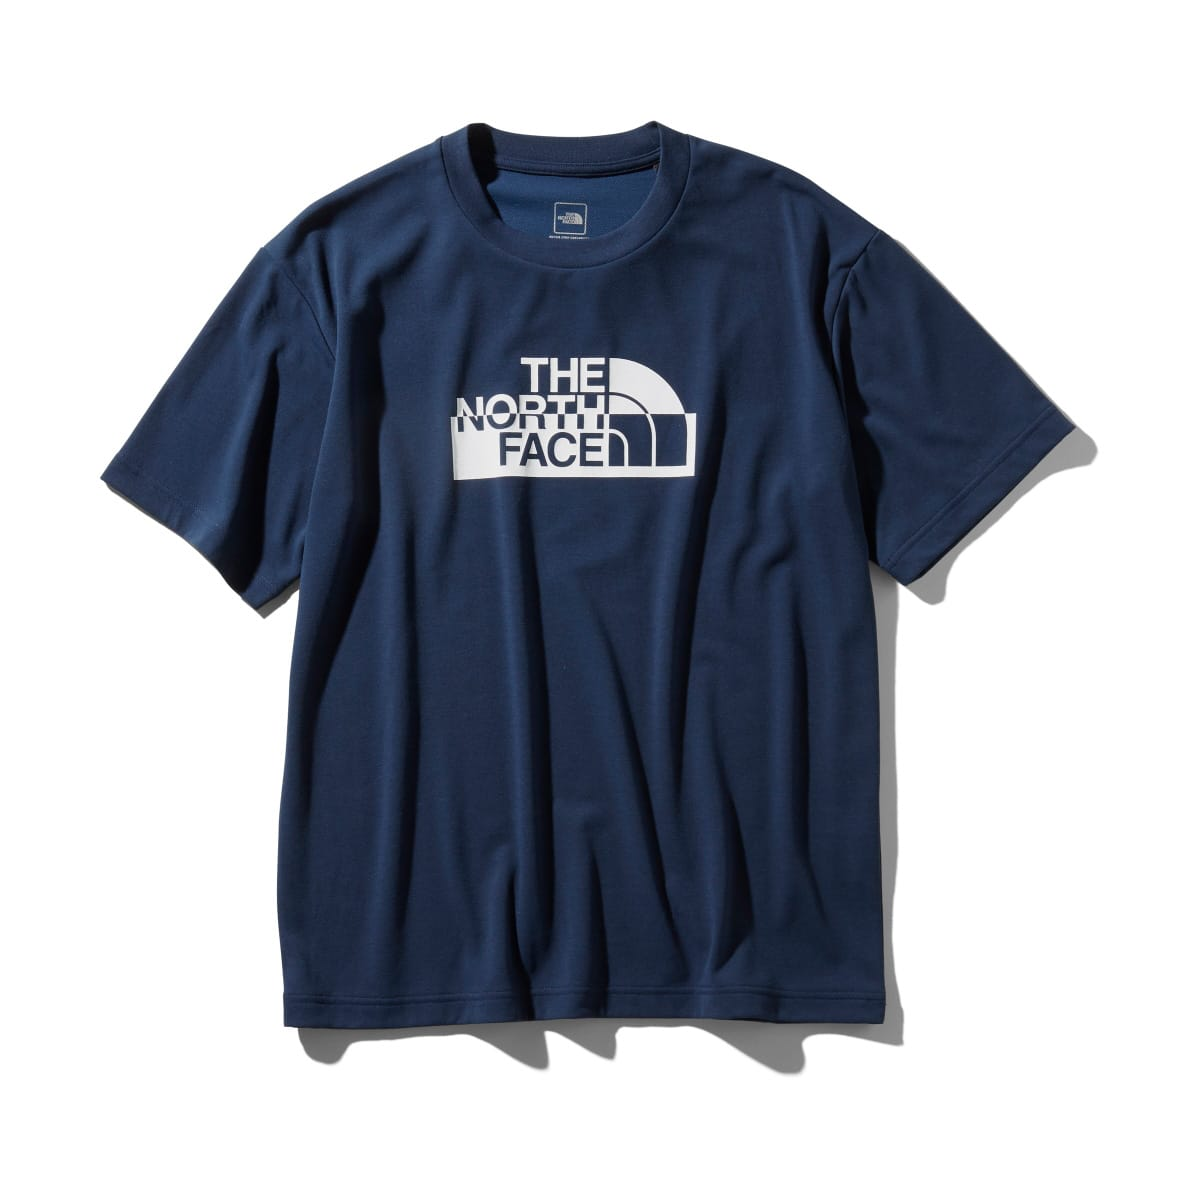 THE NORTH FACE S/S WATERSIDE GRAPHIC TEE  コズミックブルー 19SS-I_photo_large